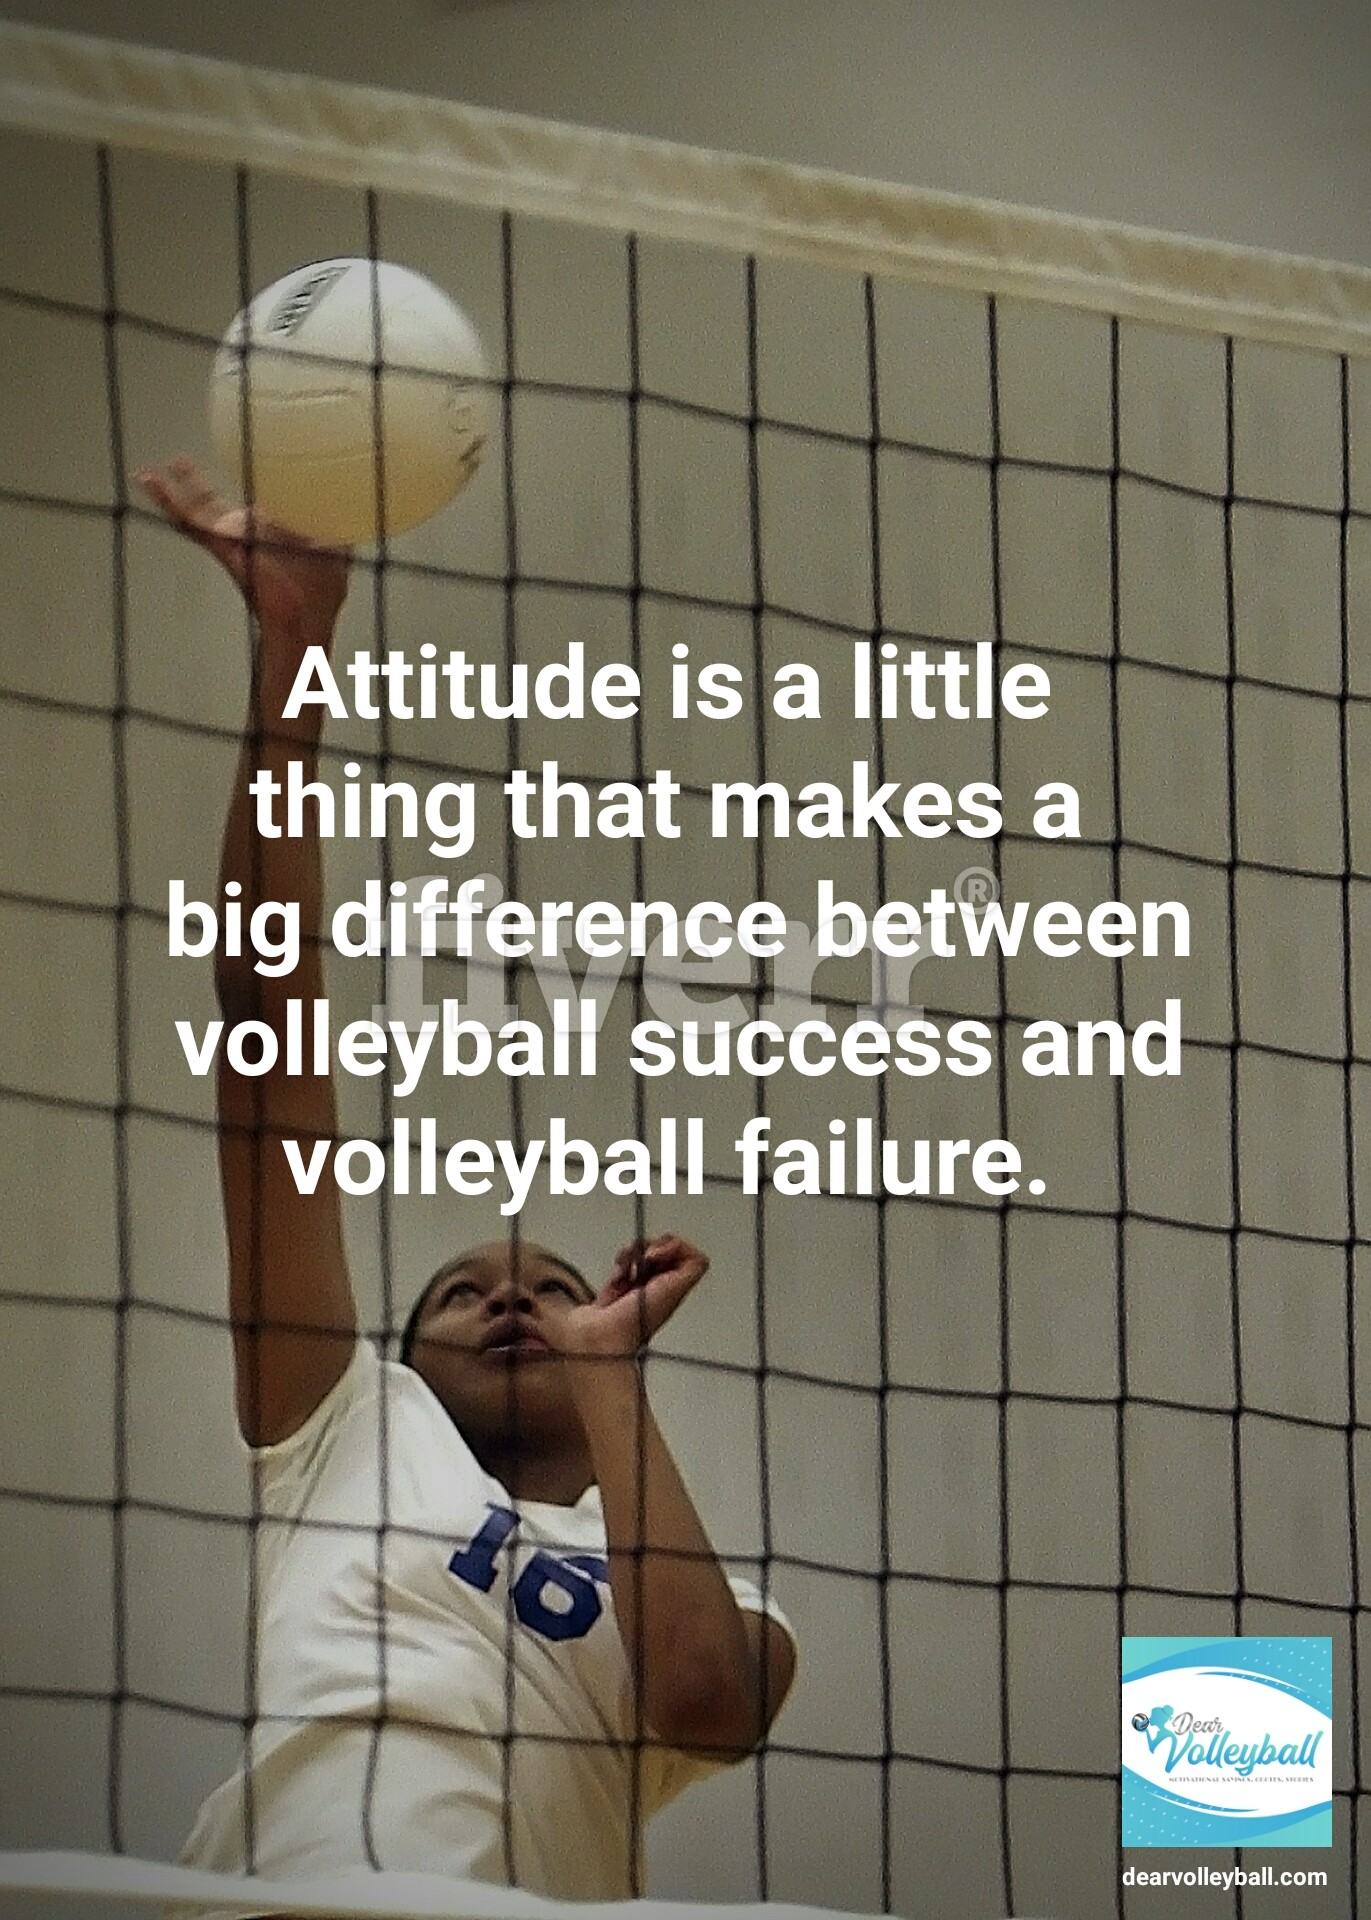 Attitude is a little thing that makes a big difference between volleyball success and volleyball failure and 75 other volleyball inspirational quotes on Dear Volleyball.com